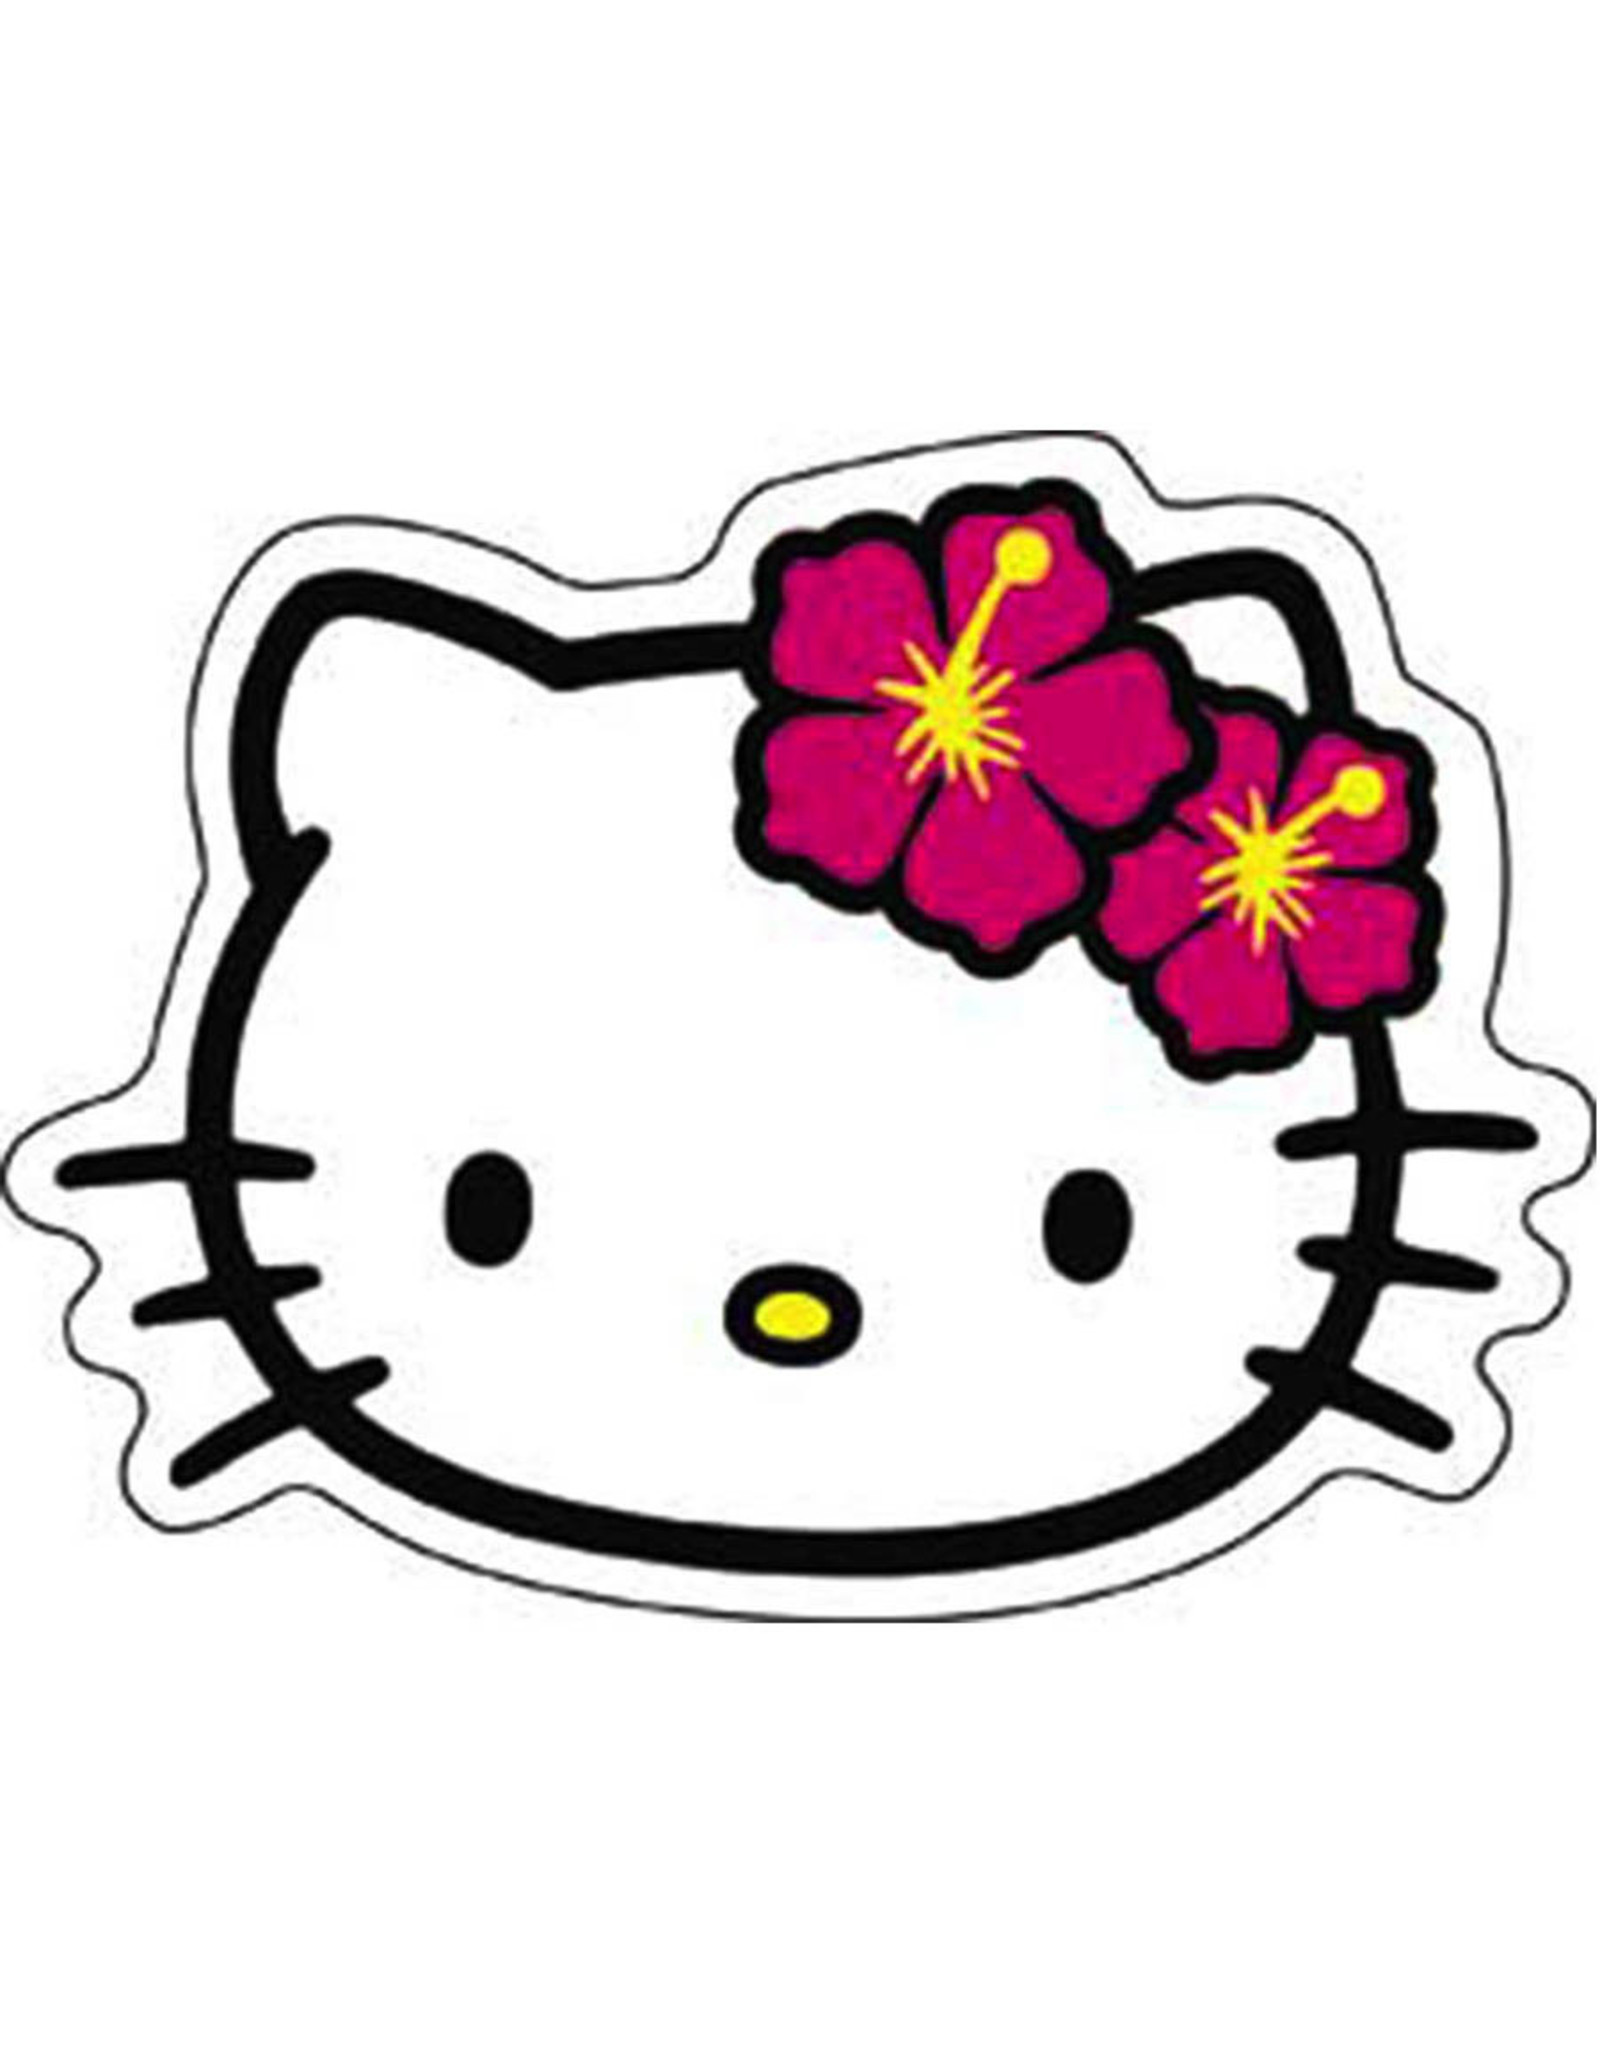 Star 500 Concert Series On Hollywood Sticker Hello Kitty Head